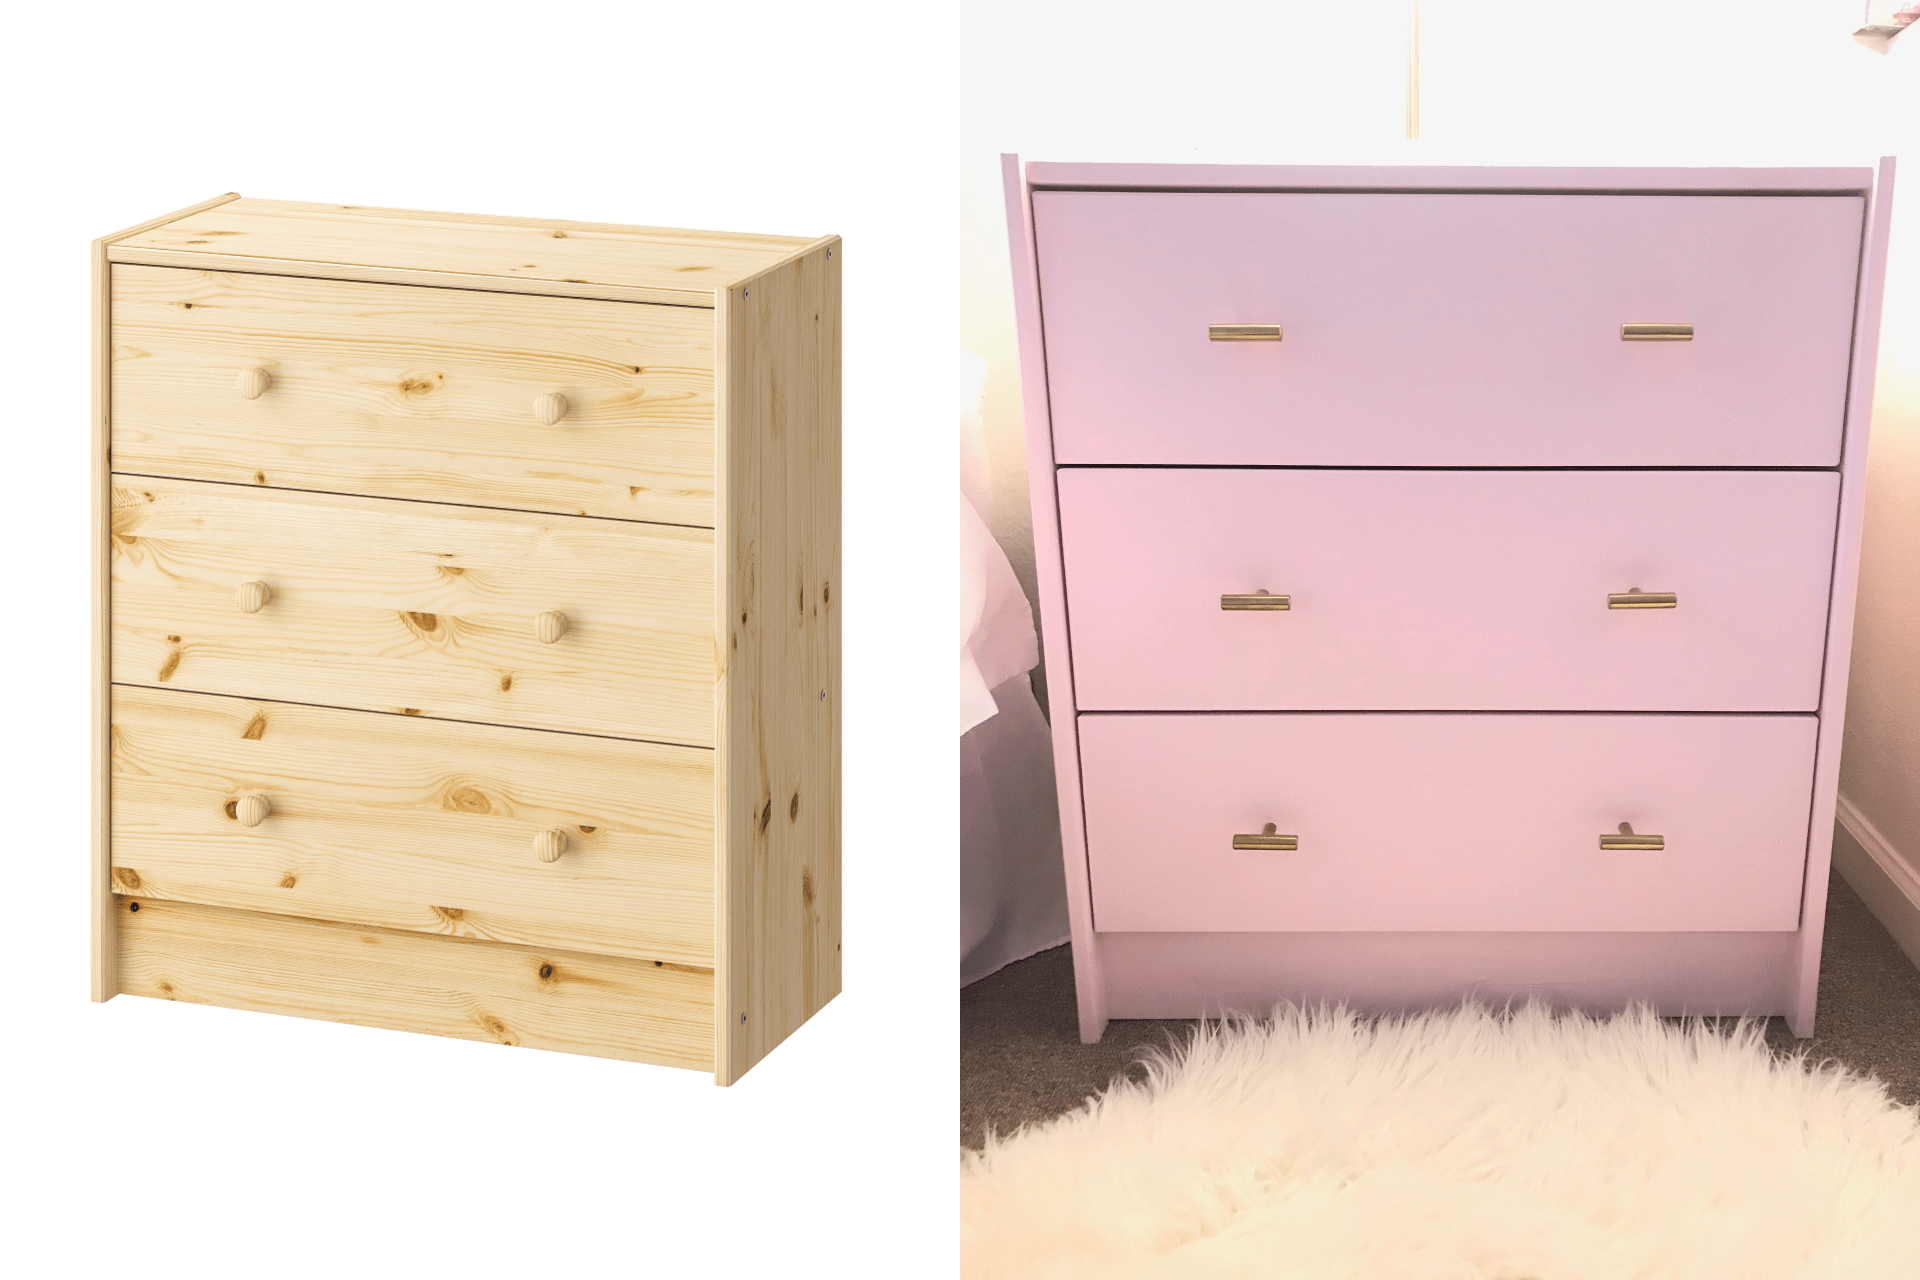 Ikea Rast Diy Ikea Rast Nightstand Blushing In Hollywood